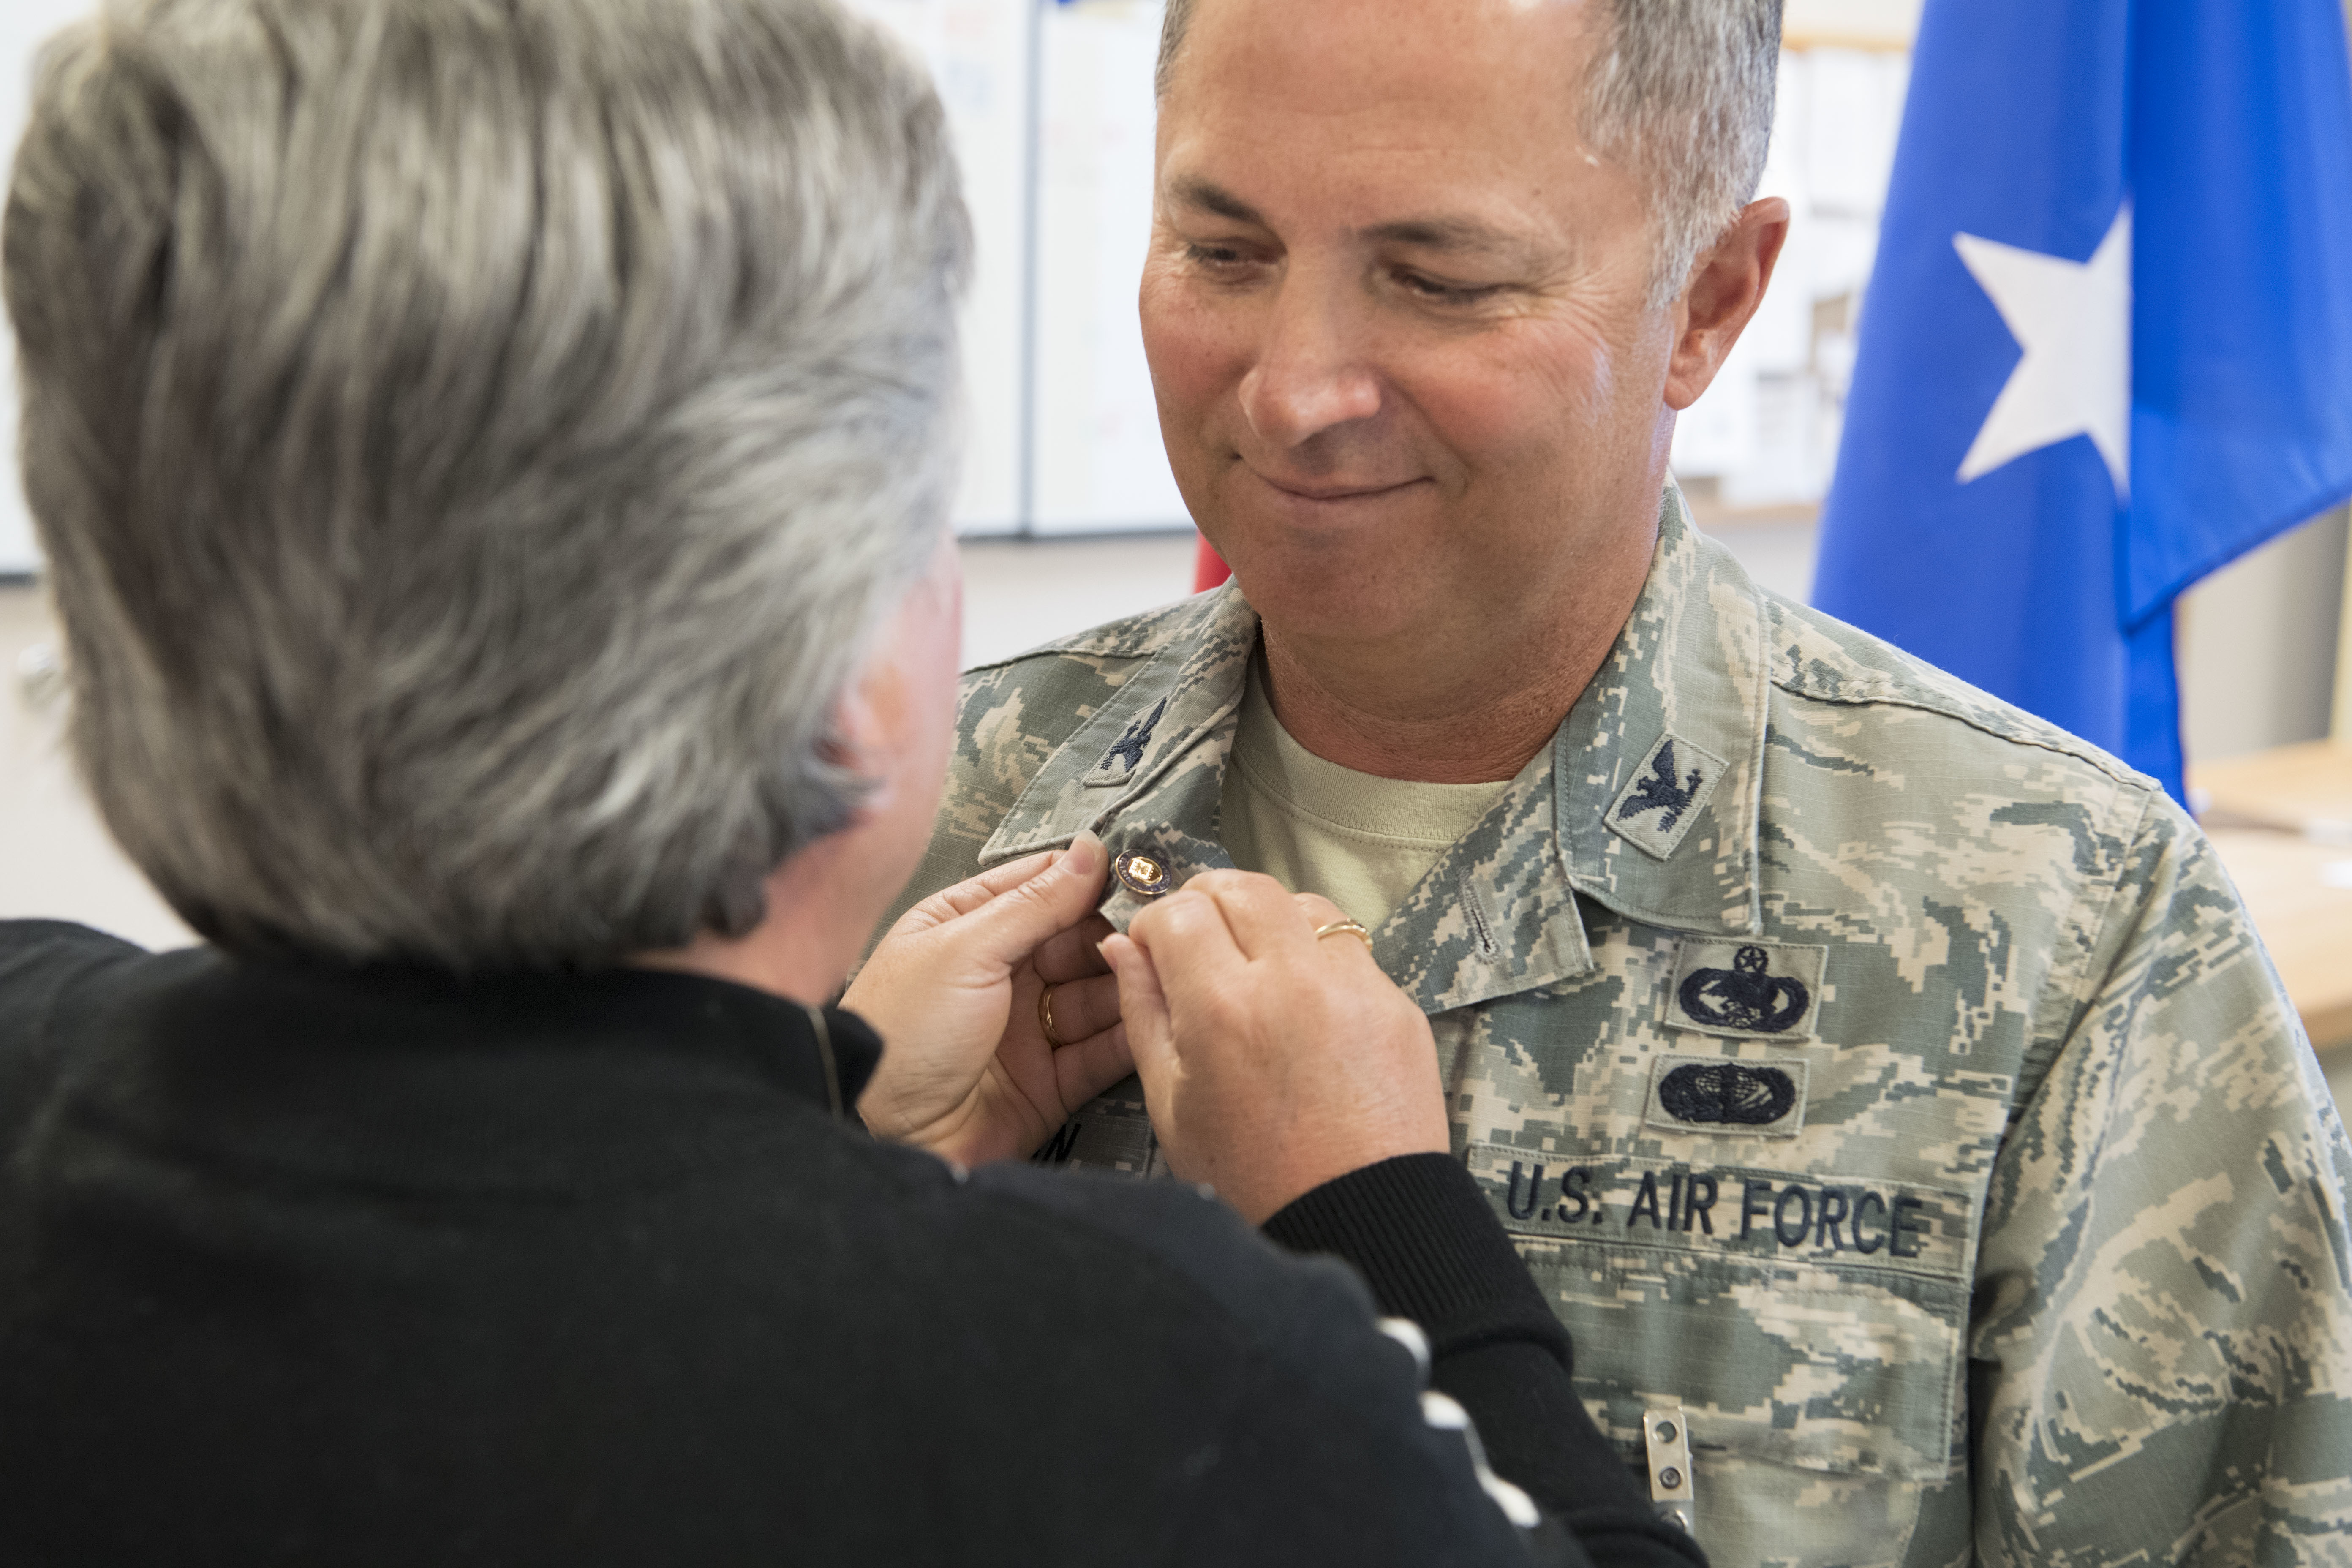 Wing celebrates 37 year career of vice wing commander 130th air force retirement lapel pin to col randy c photo details download hi res 1 of 1 publicscrutiny Choice Image